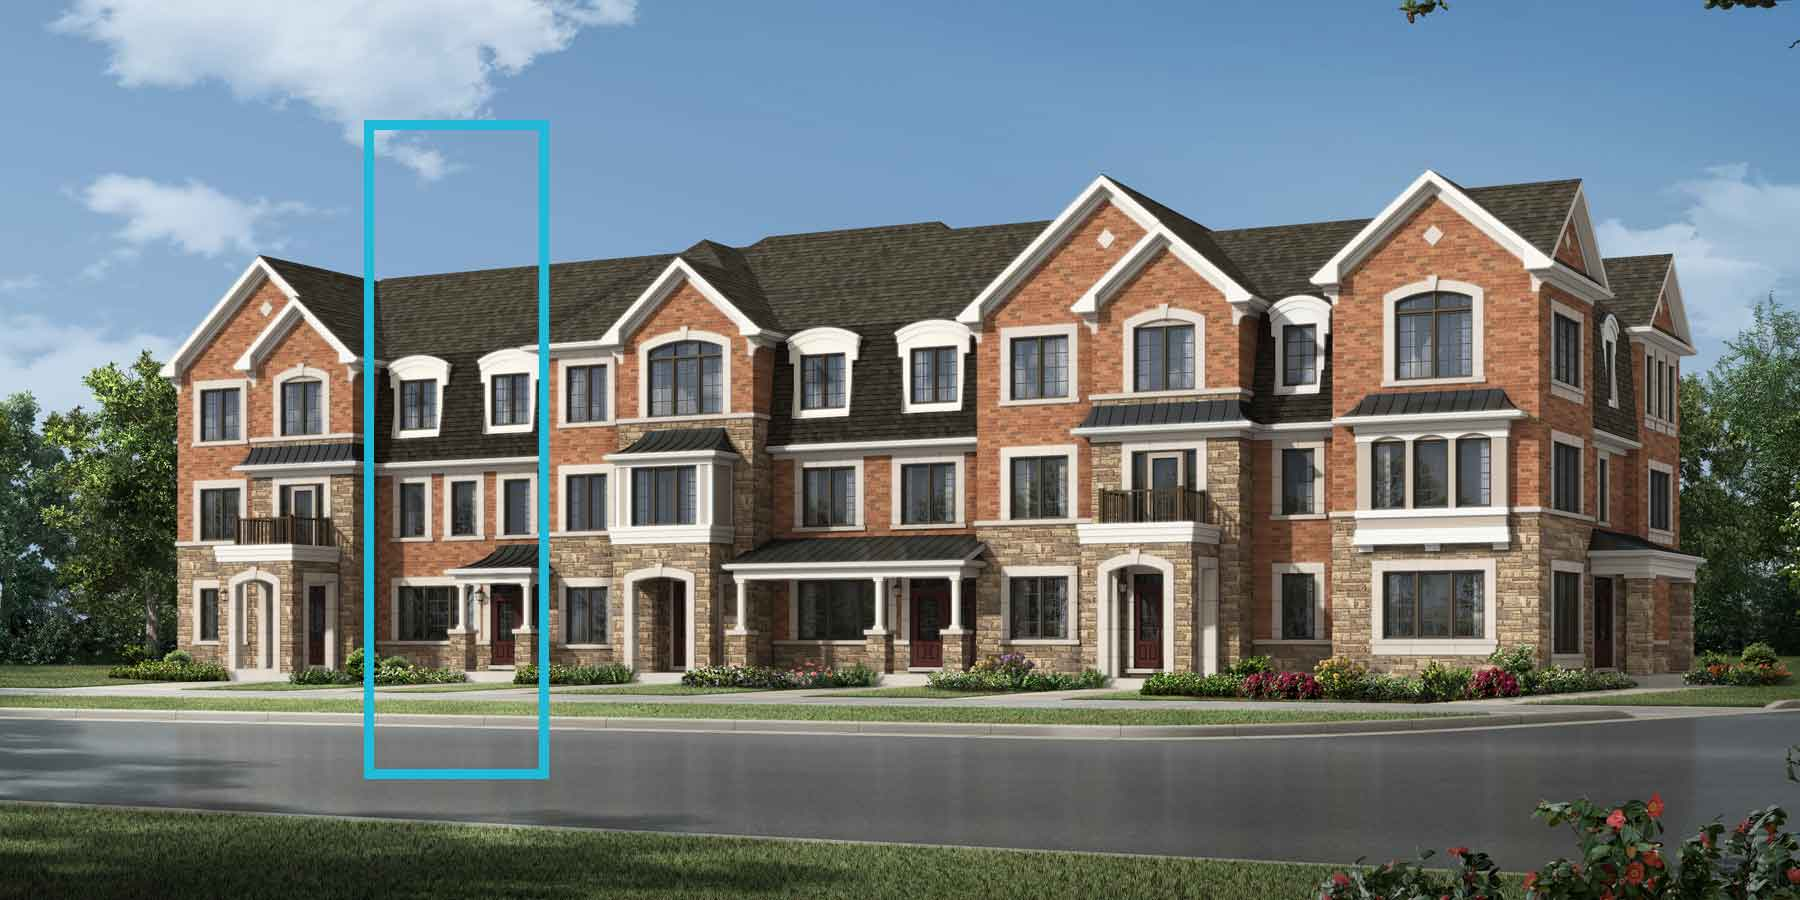 Brookside Plan TownHomes at Seaton Whitevale in Pickering Ontario by Mattamy Homes